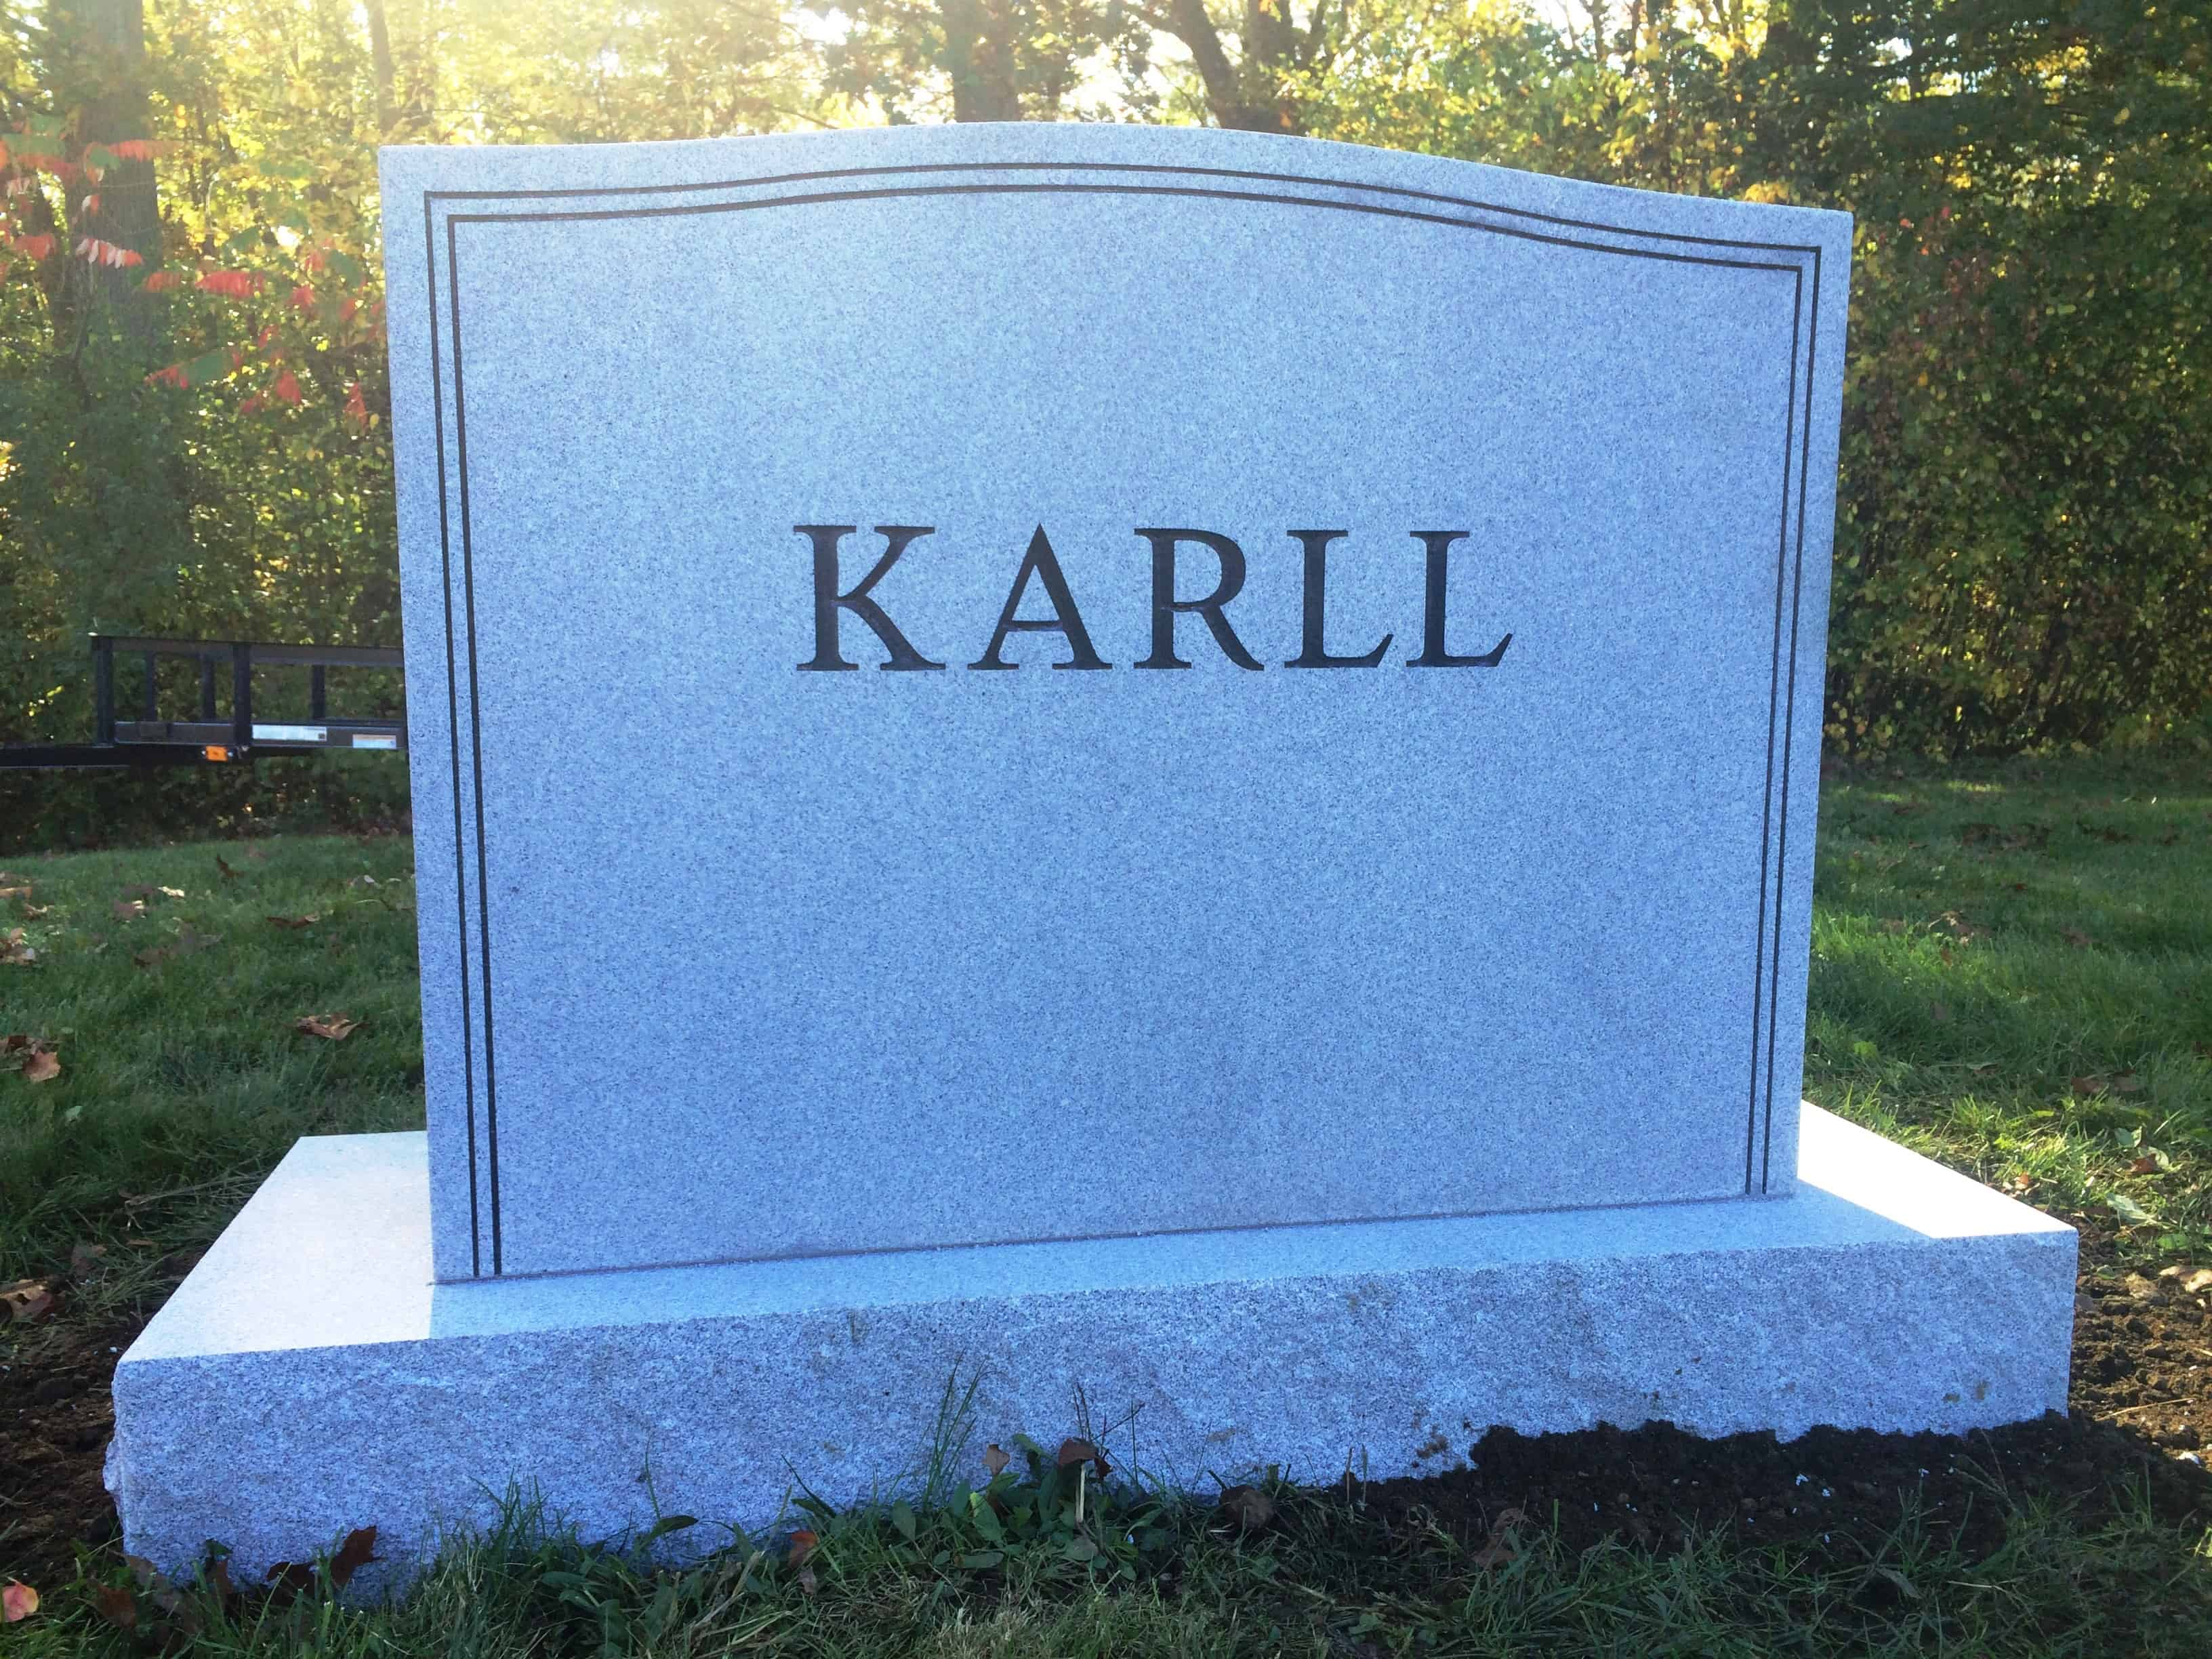 Karll-Family-Stone-Photo-Oct-20-2-32-30-PM